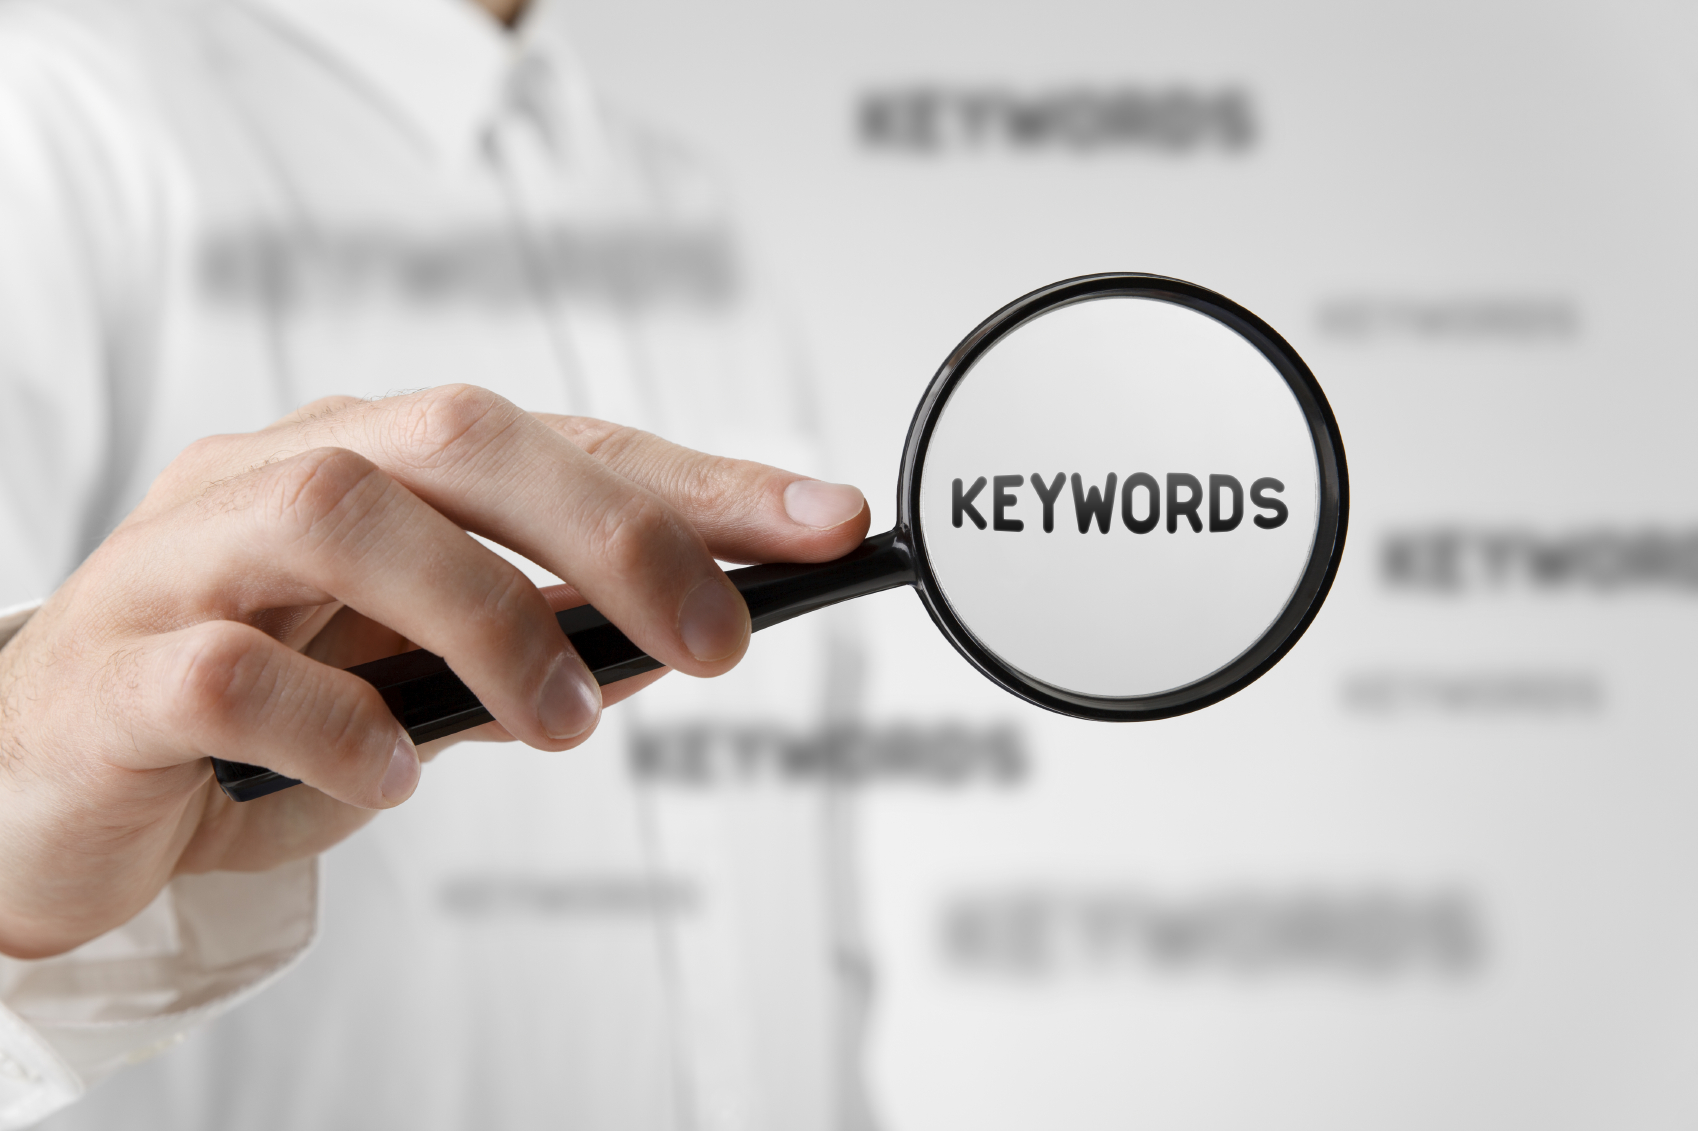 search, keywords, magnifying glass